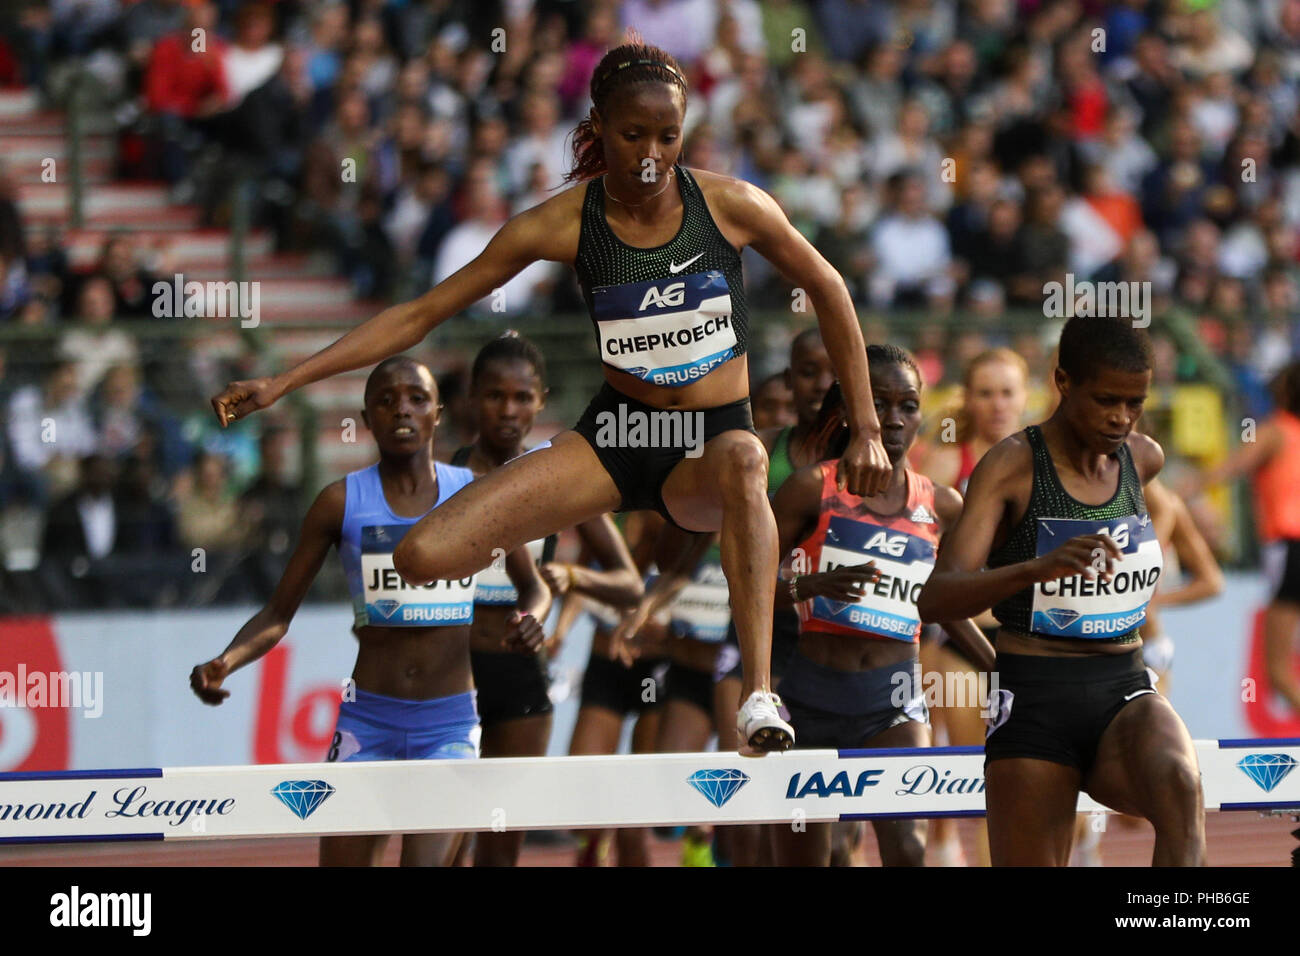 Brussels, Belgium. 31st Aug, 2018. Beatrice Chepkoech of Kenya competes during the women's 3,000m steeplechase at the IAAF Diamond League athletics meeting in Brussels, Belgium, Aug. 31, 2018. Beatrice Chepkoech claimed the title in a time of 8 minutes and 55.10 seconds. Credit: Zheng Huansong/Xinhua/Alamy Live News - Stock Image